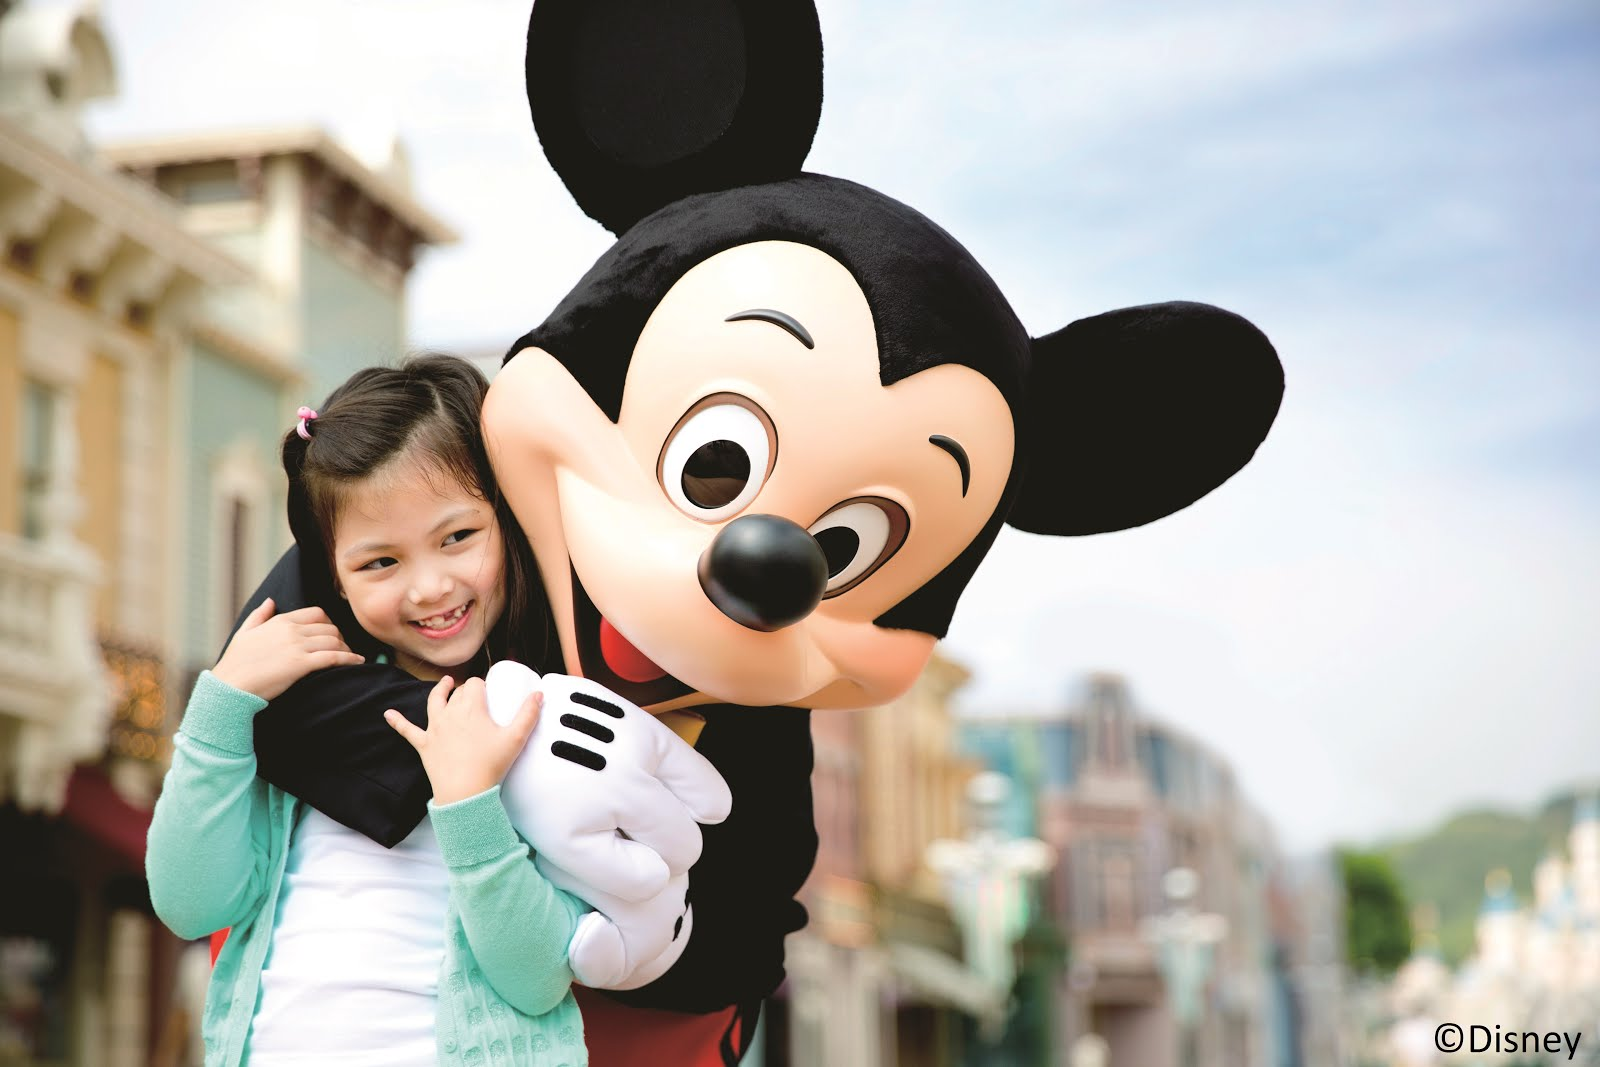 Mickey Mouse Experience at Disneyland, Hong Kong